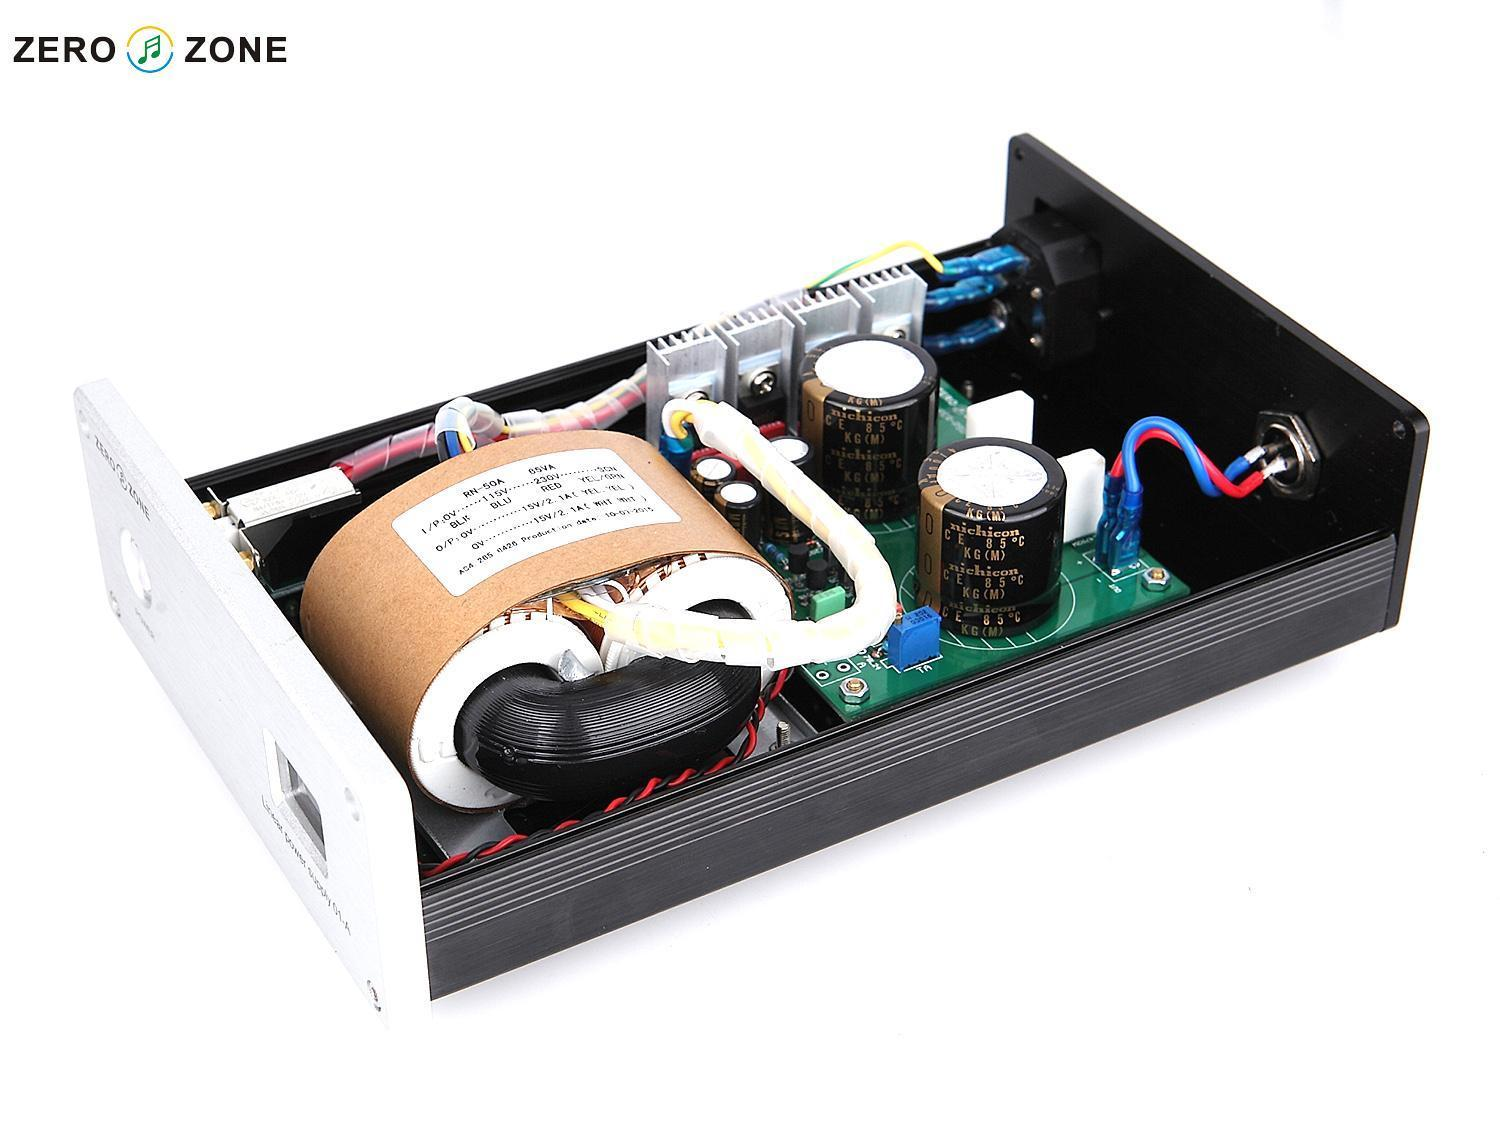 ZEROZONE Hiend S22 65VA HIFI Linear Power supply TOP LPS for preamp /DAC DC5V-36V L7-32 zerozone dc9v 3a hifi linear power supply for amp dac external psu lps